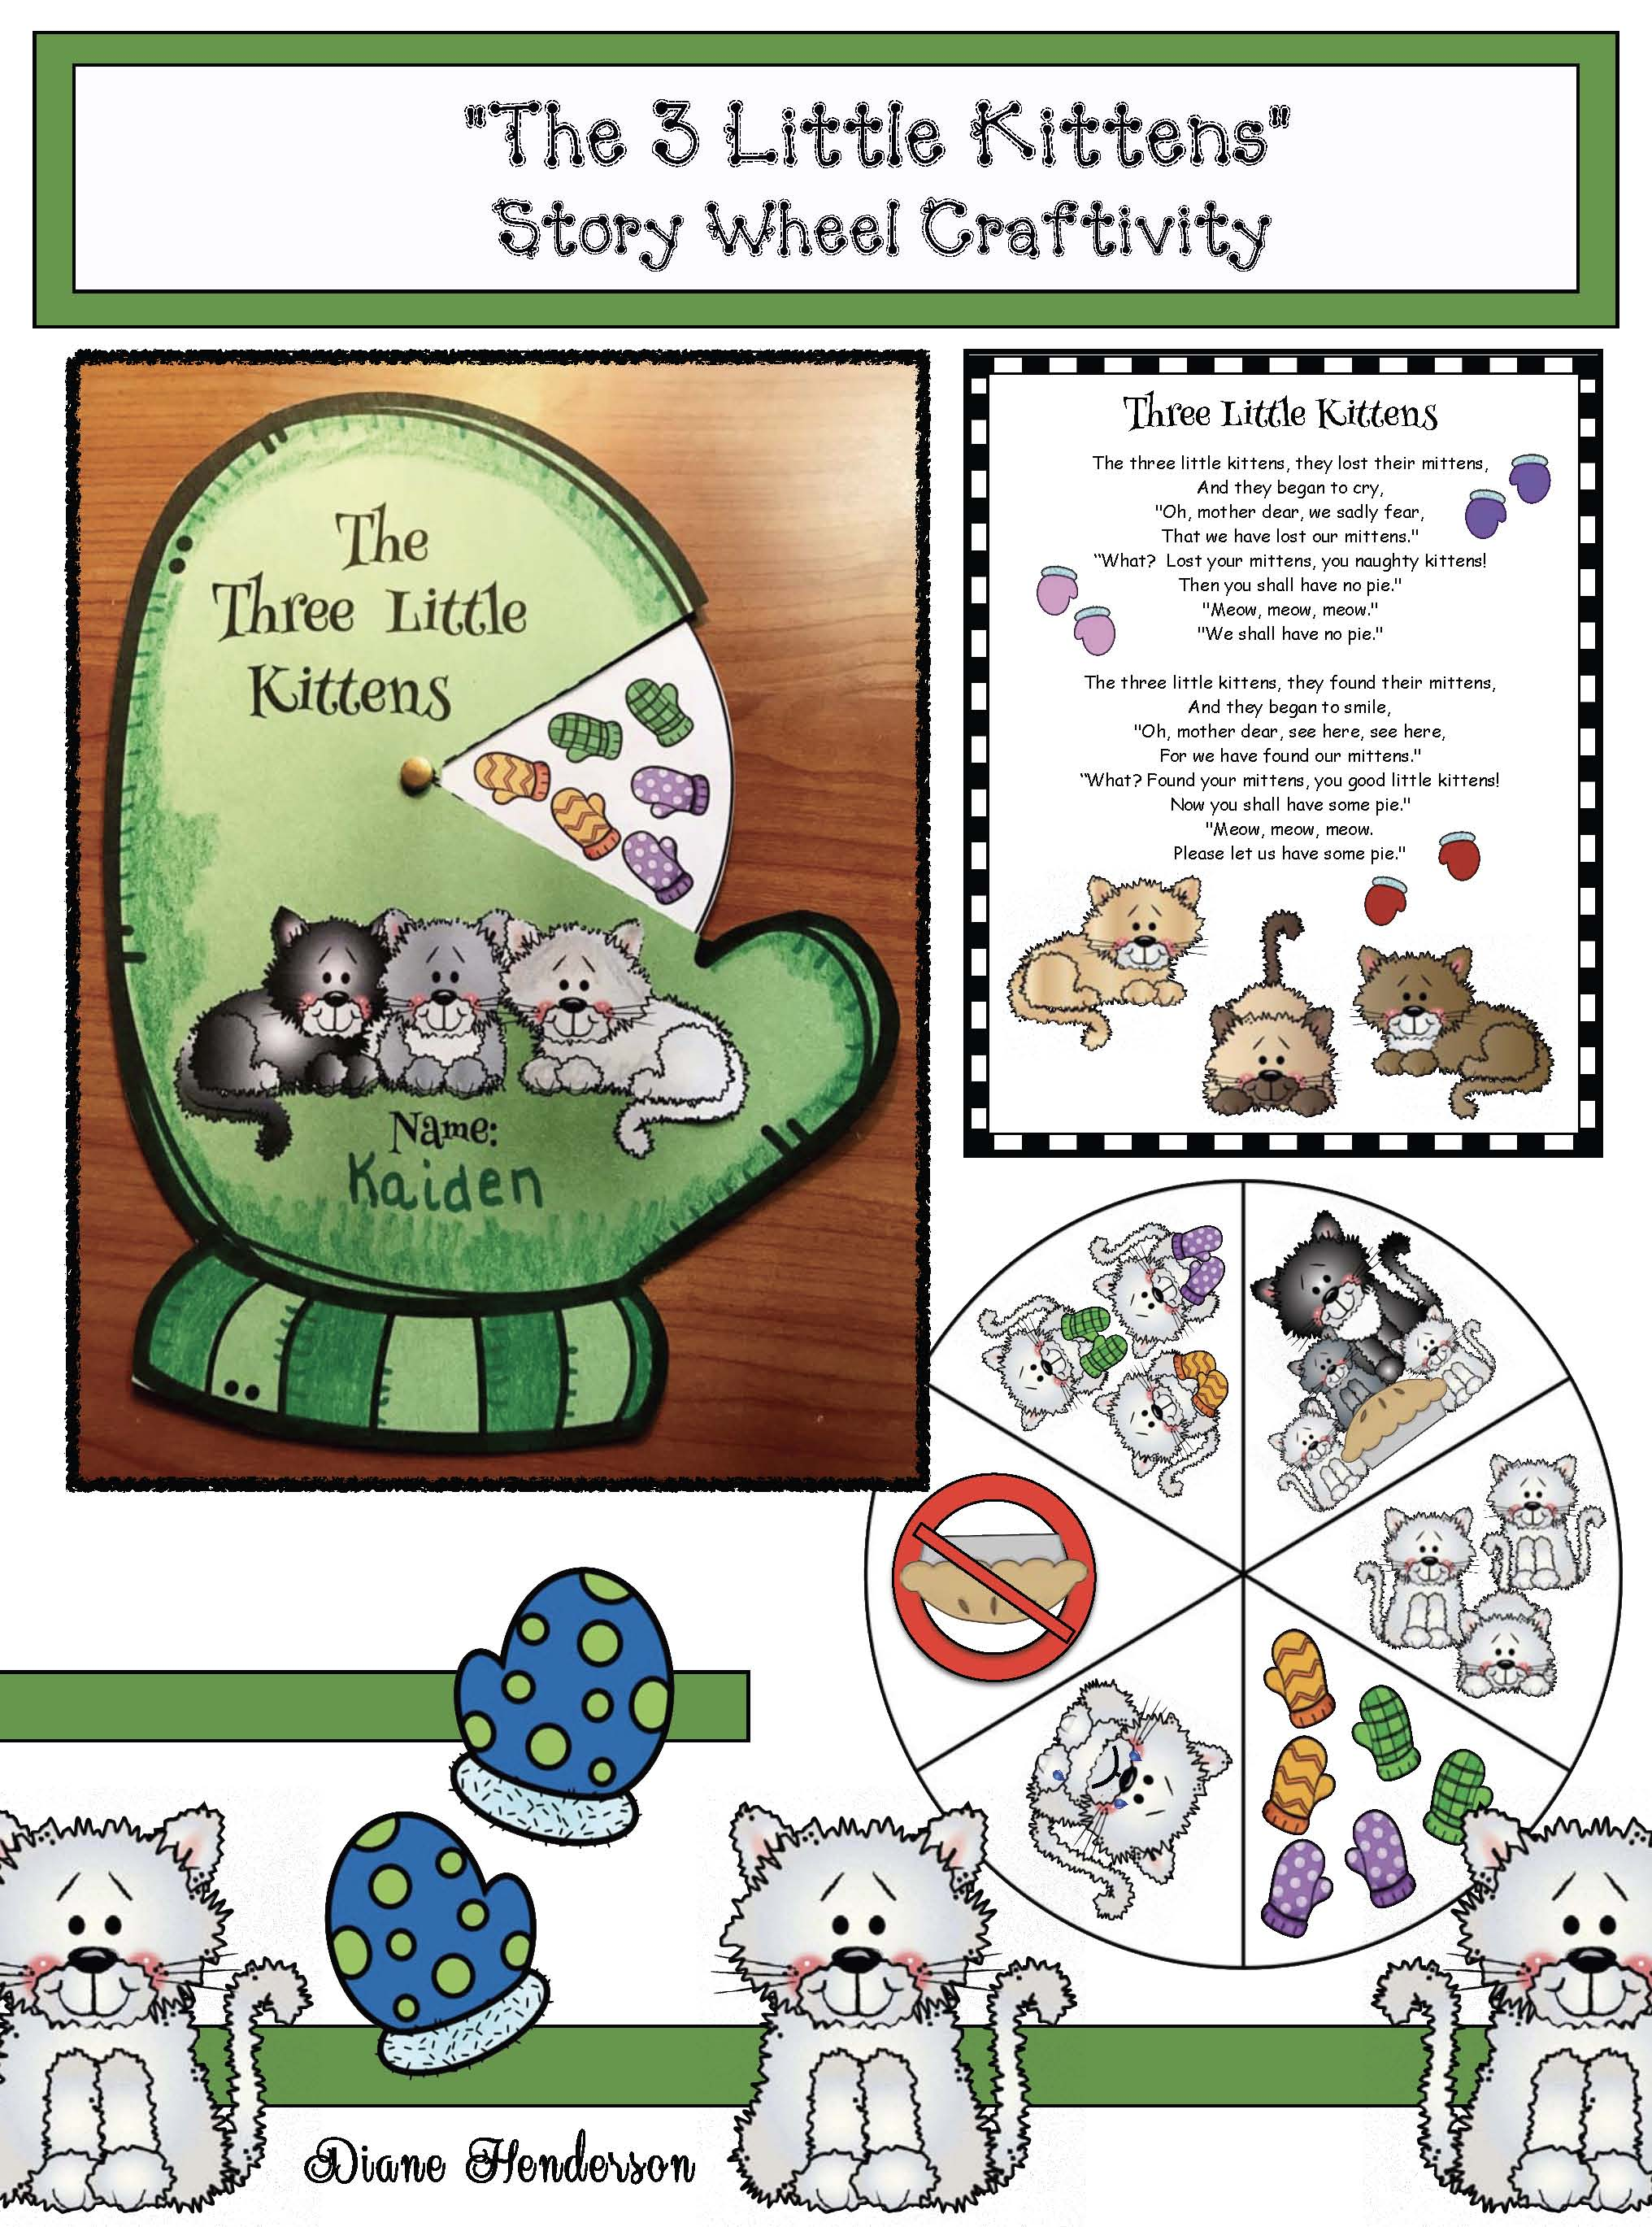 story telling wheels, nursery rhyme activities, nursery rhyme crafts, 3 little kittens, nursery rhyme centers, activities for the 3 little kittens nursery rhyme